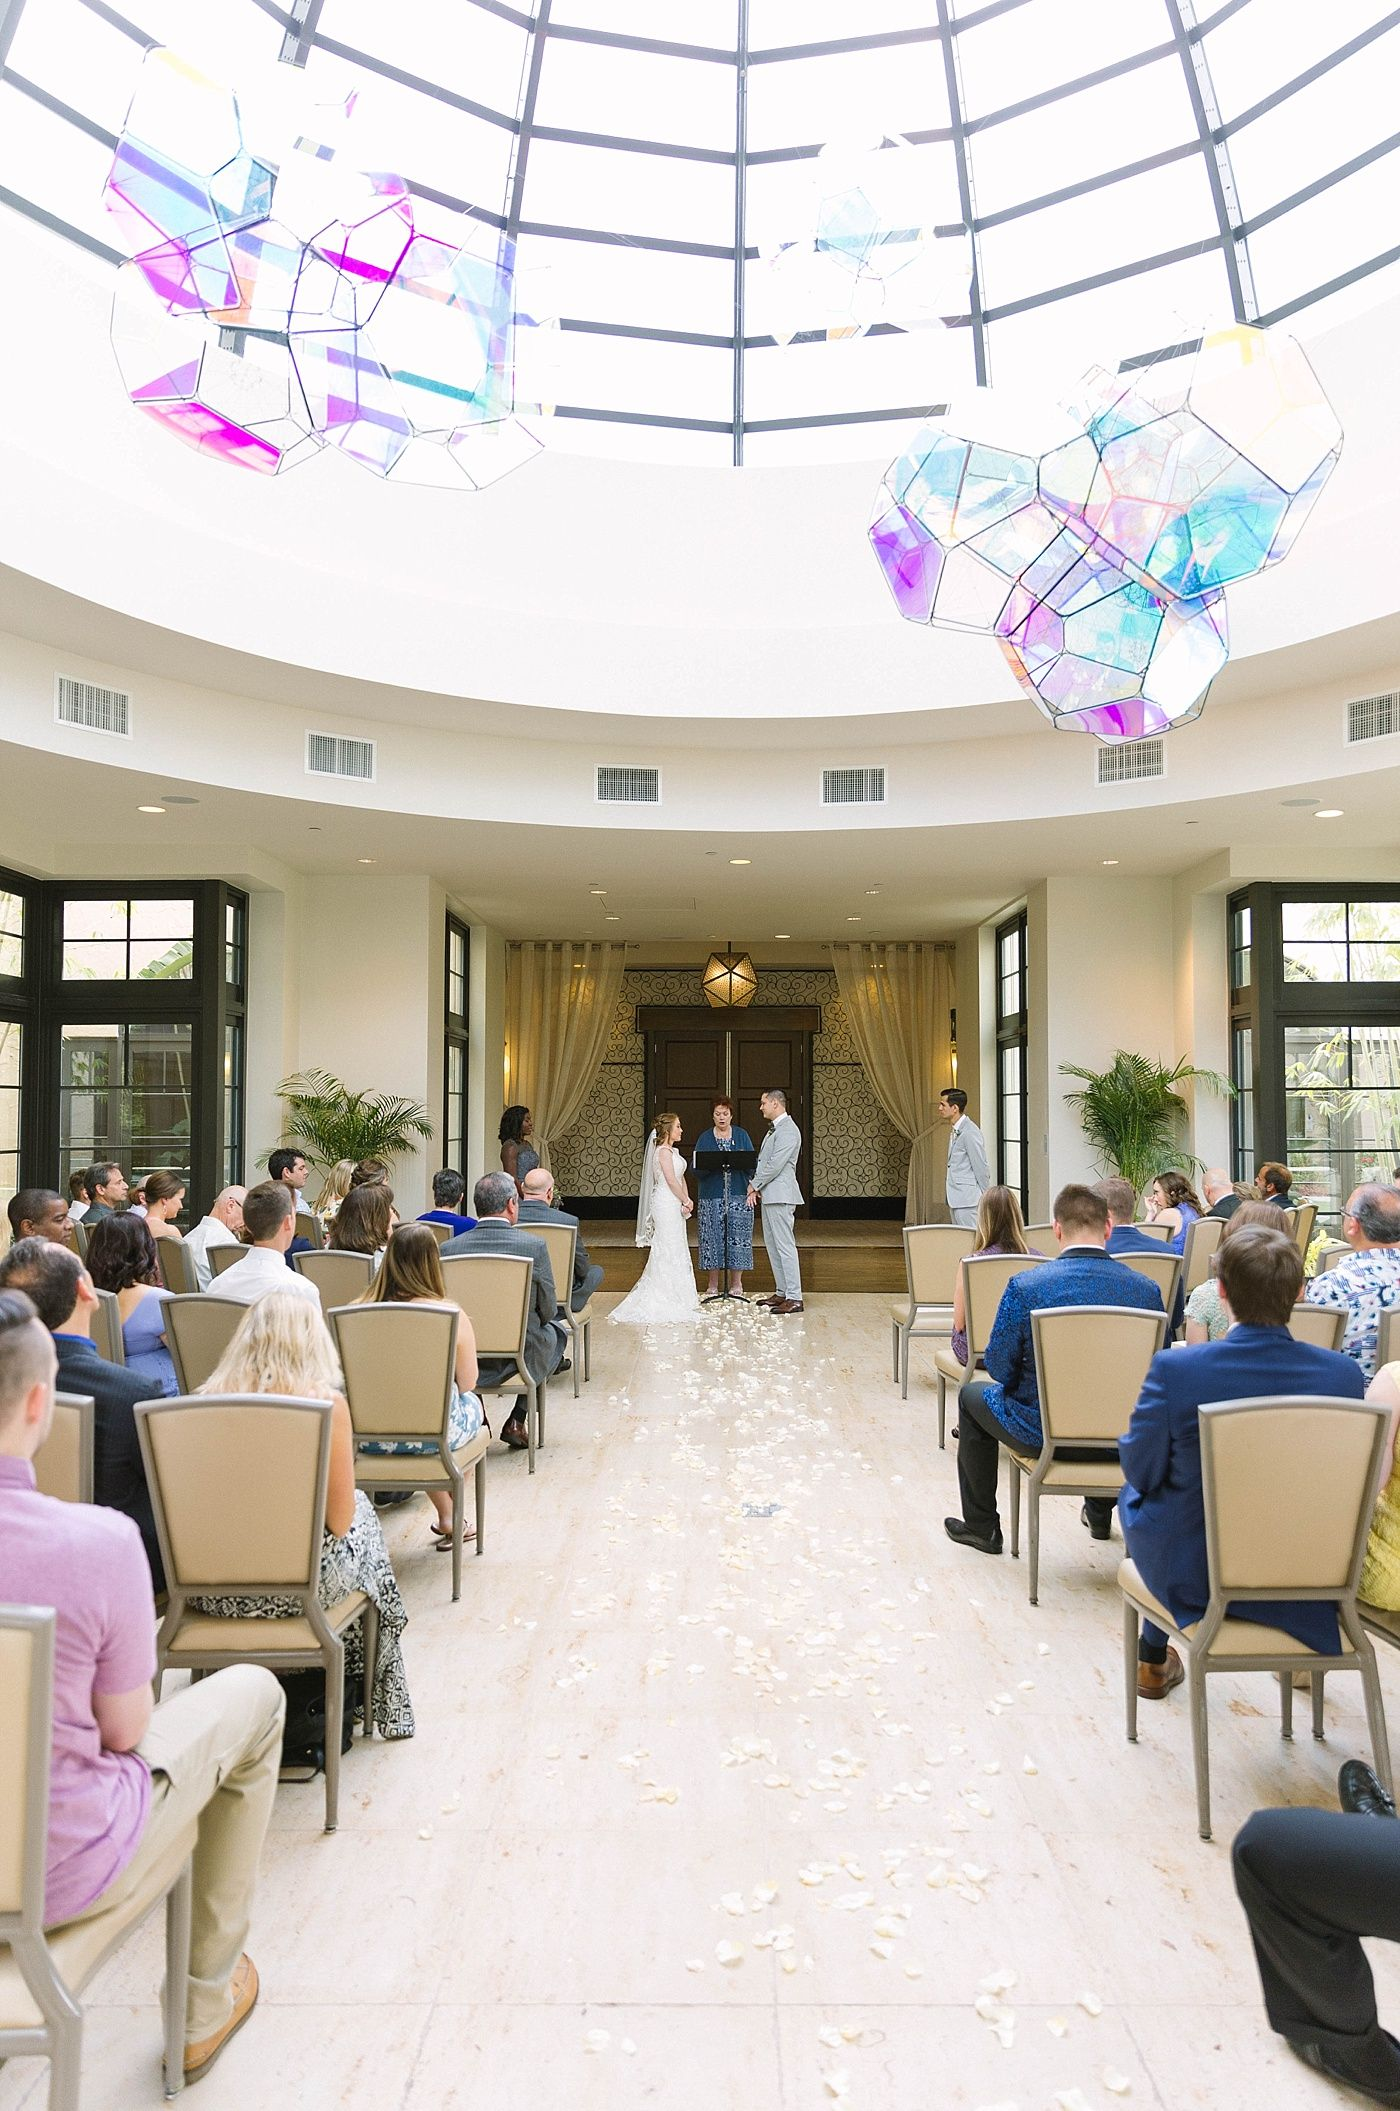 10++ Wedding party pictures indoors ideas